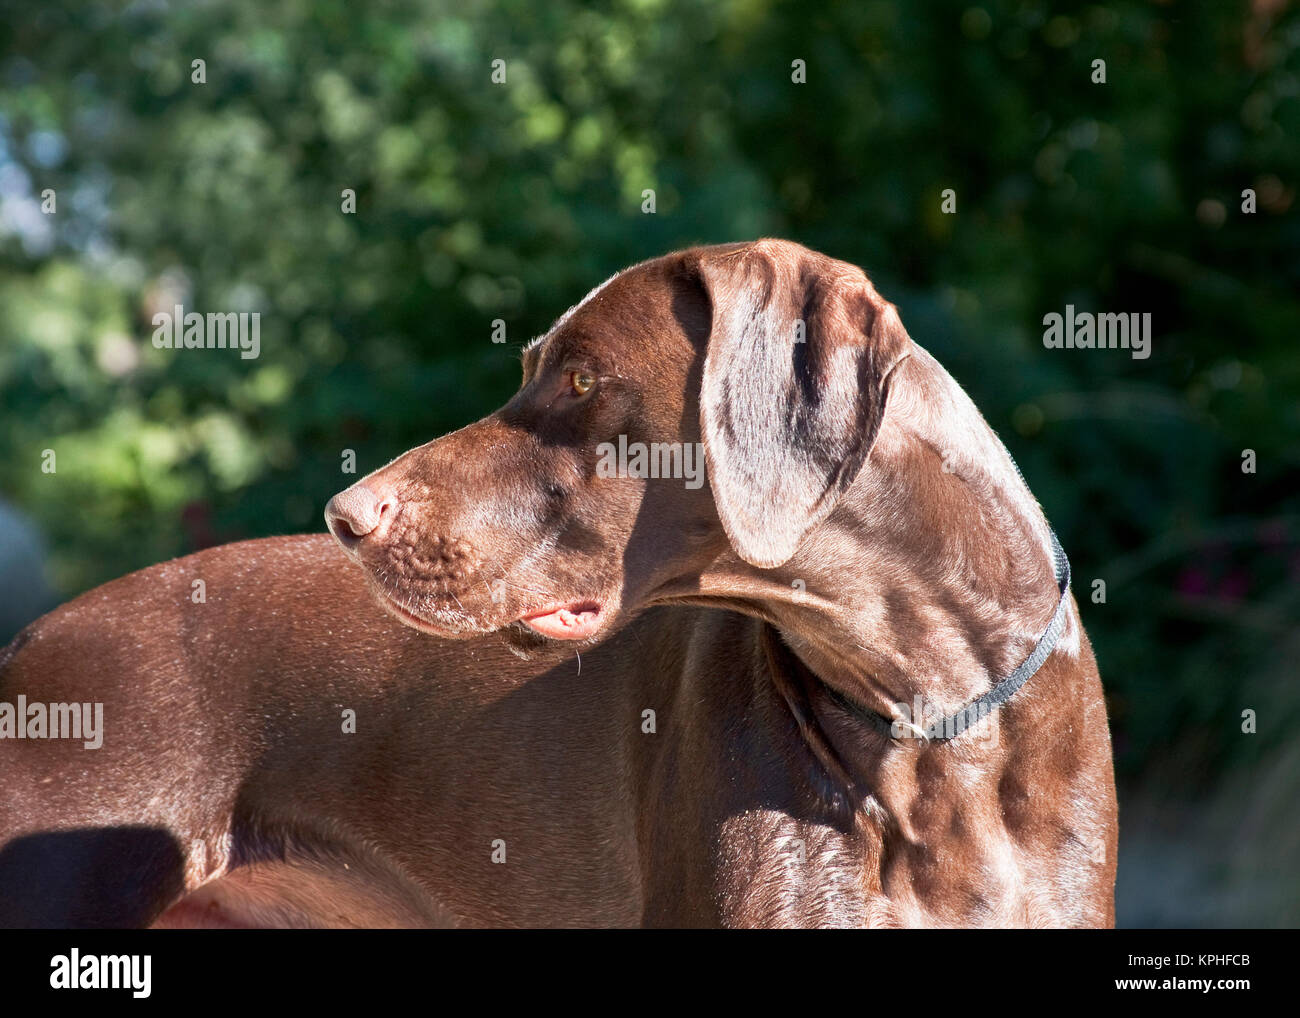 A German Shorthaired Pointer looking over his shoulder. - Stock Image